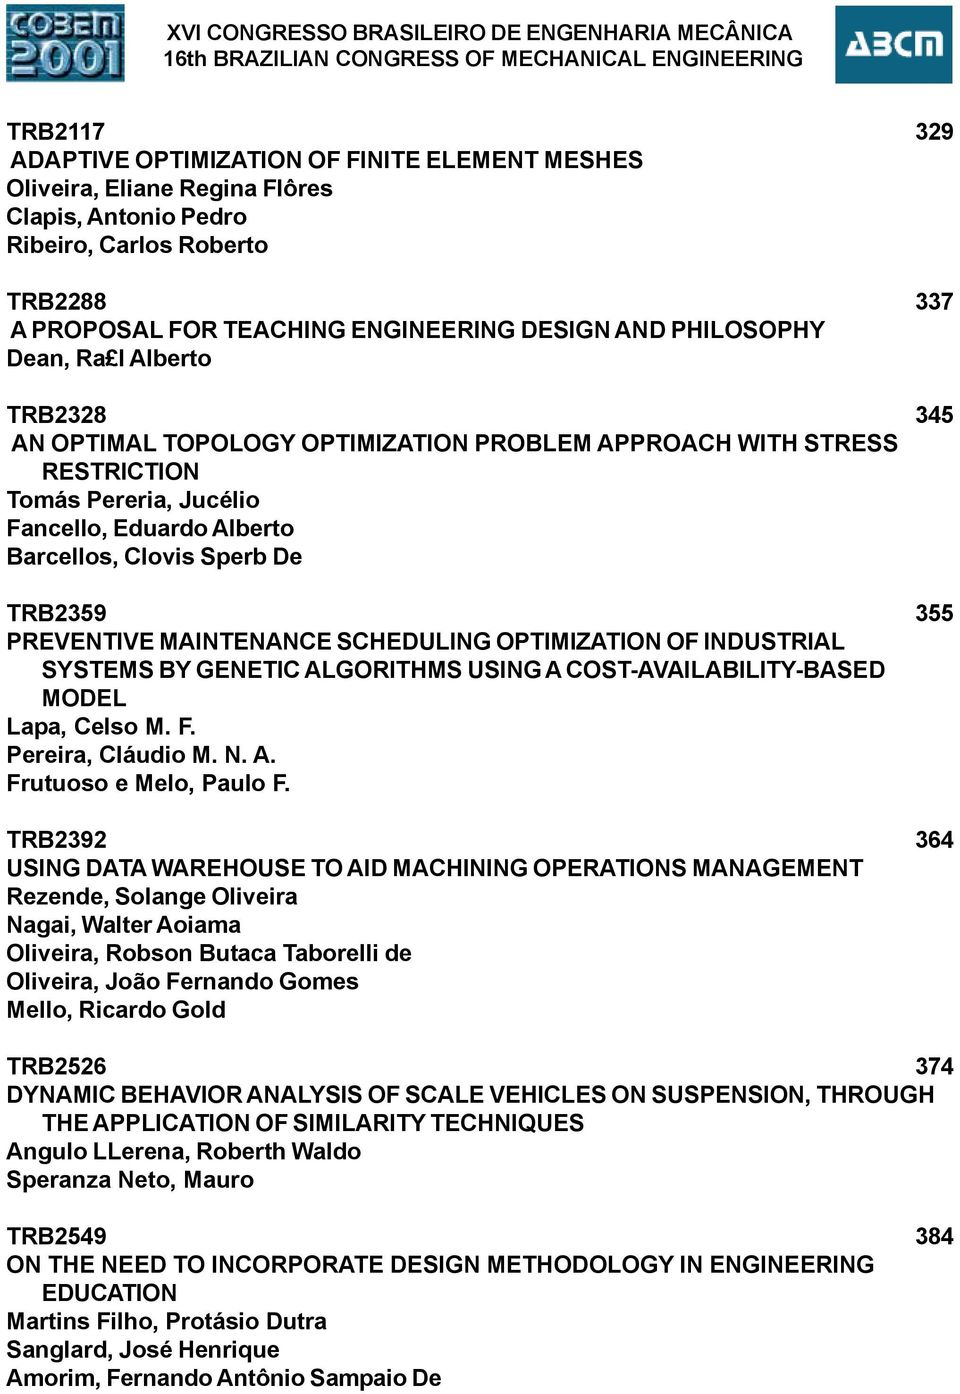 RESTRICTION Tomás Pereria, Jucélio Fancello, Eduardo Alberto Barcellos, Clovis Sperb De TRB359 355 PREVENTIVE MAINTENANCE SCHEDULING OPTIMIZATION OF INDUSTRIAL SYSTEMS BY GENETIC ALGORITHMS USING A